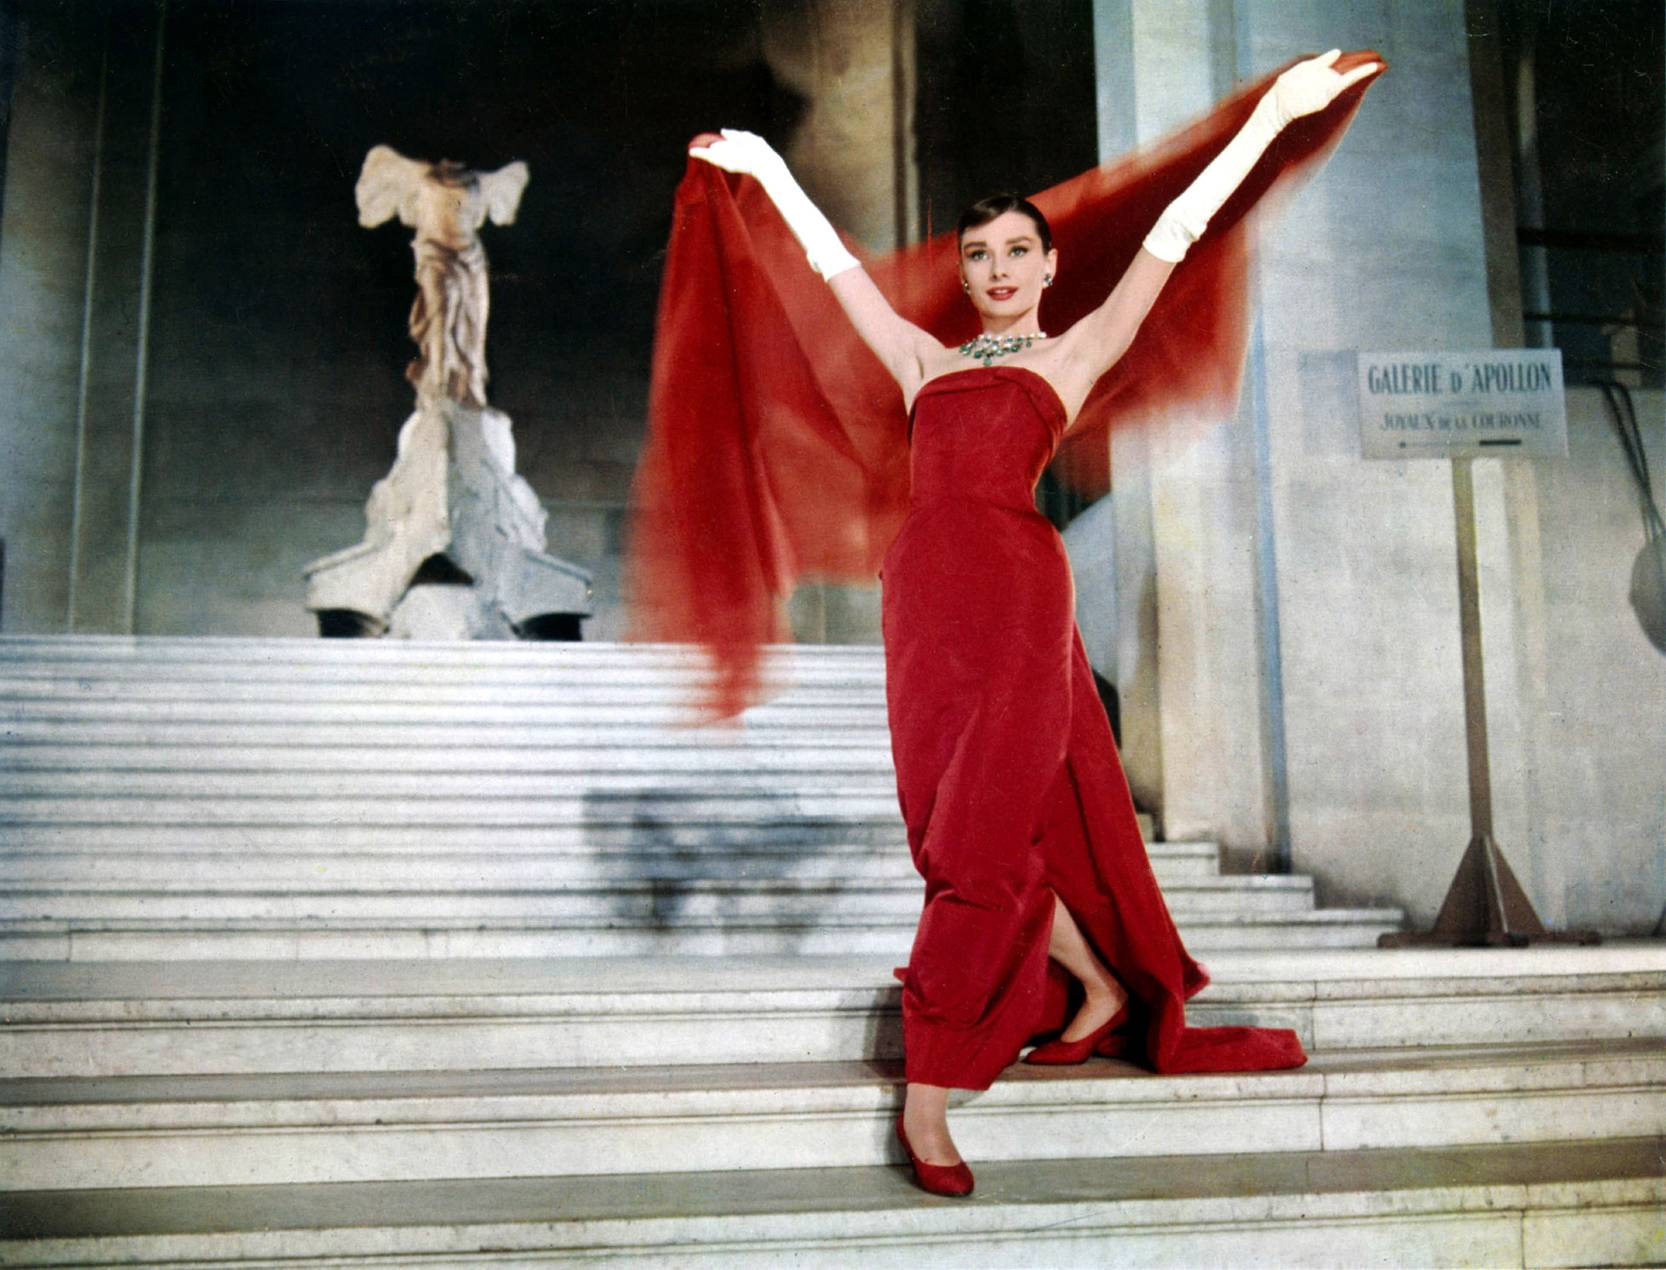 funny face scene audrey hepburn red dress